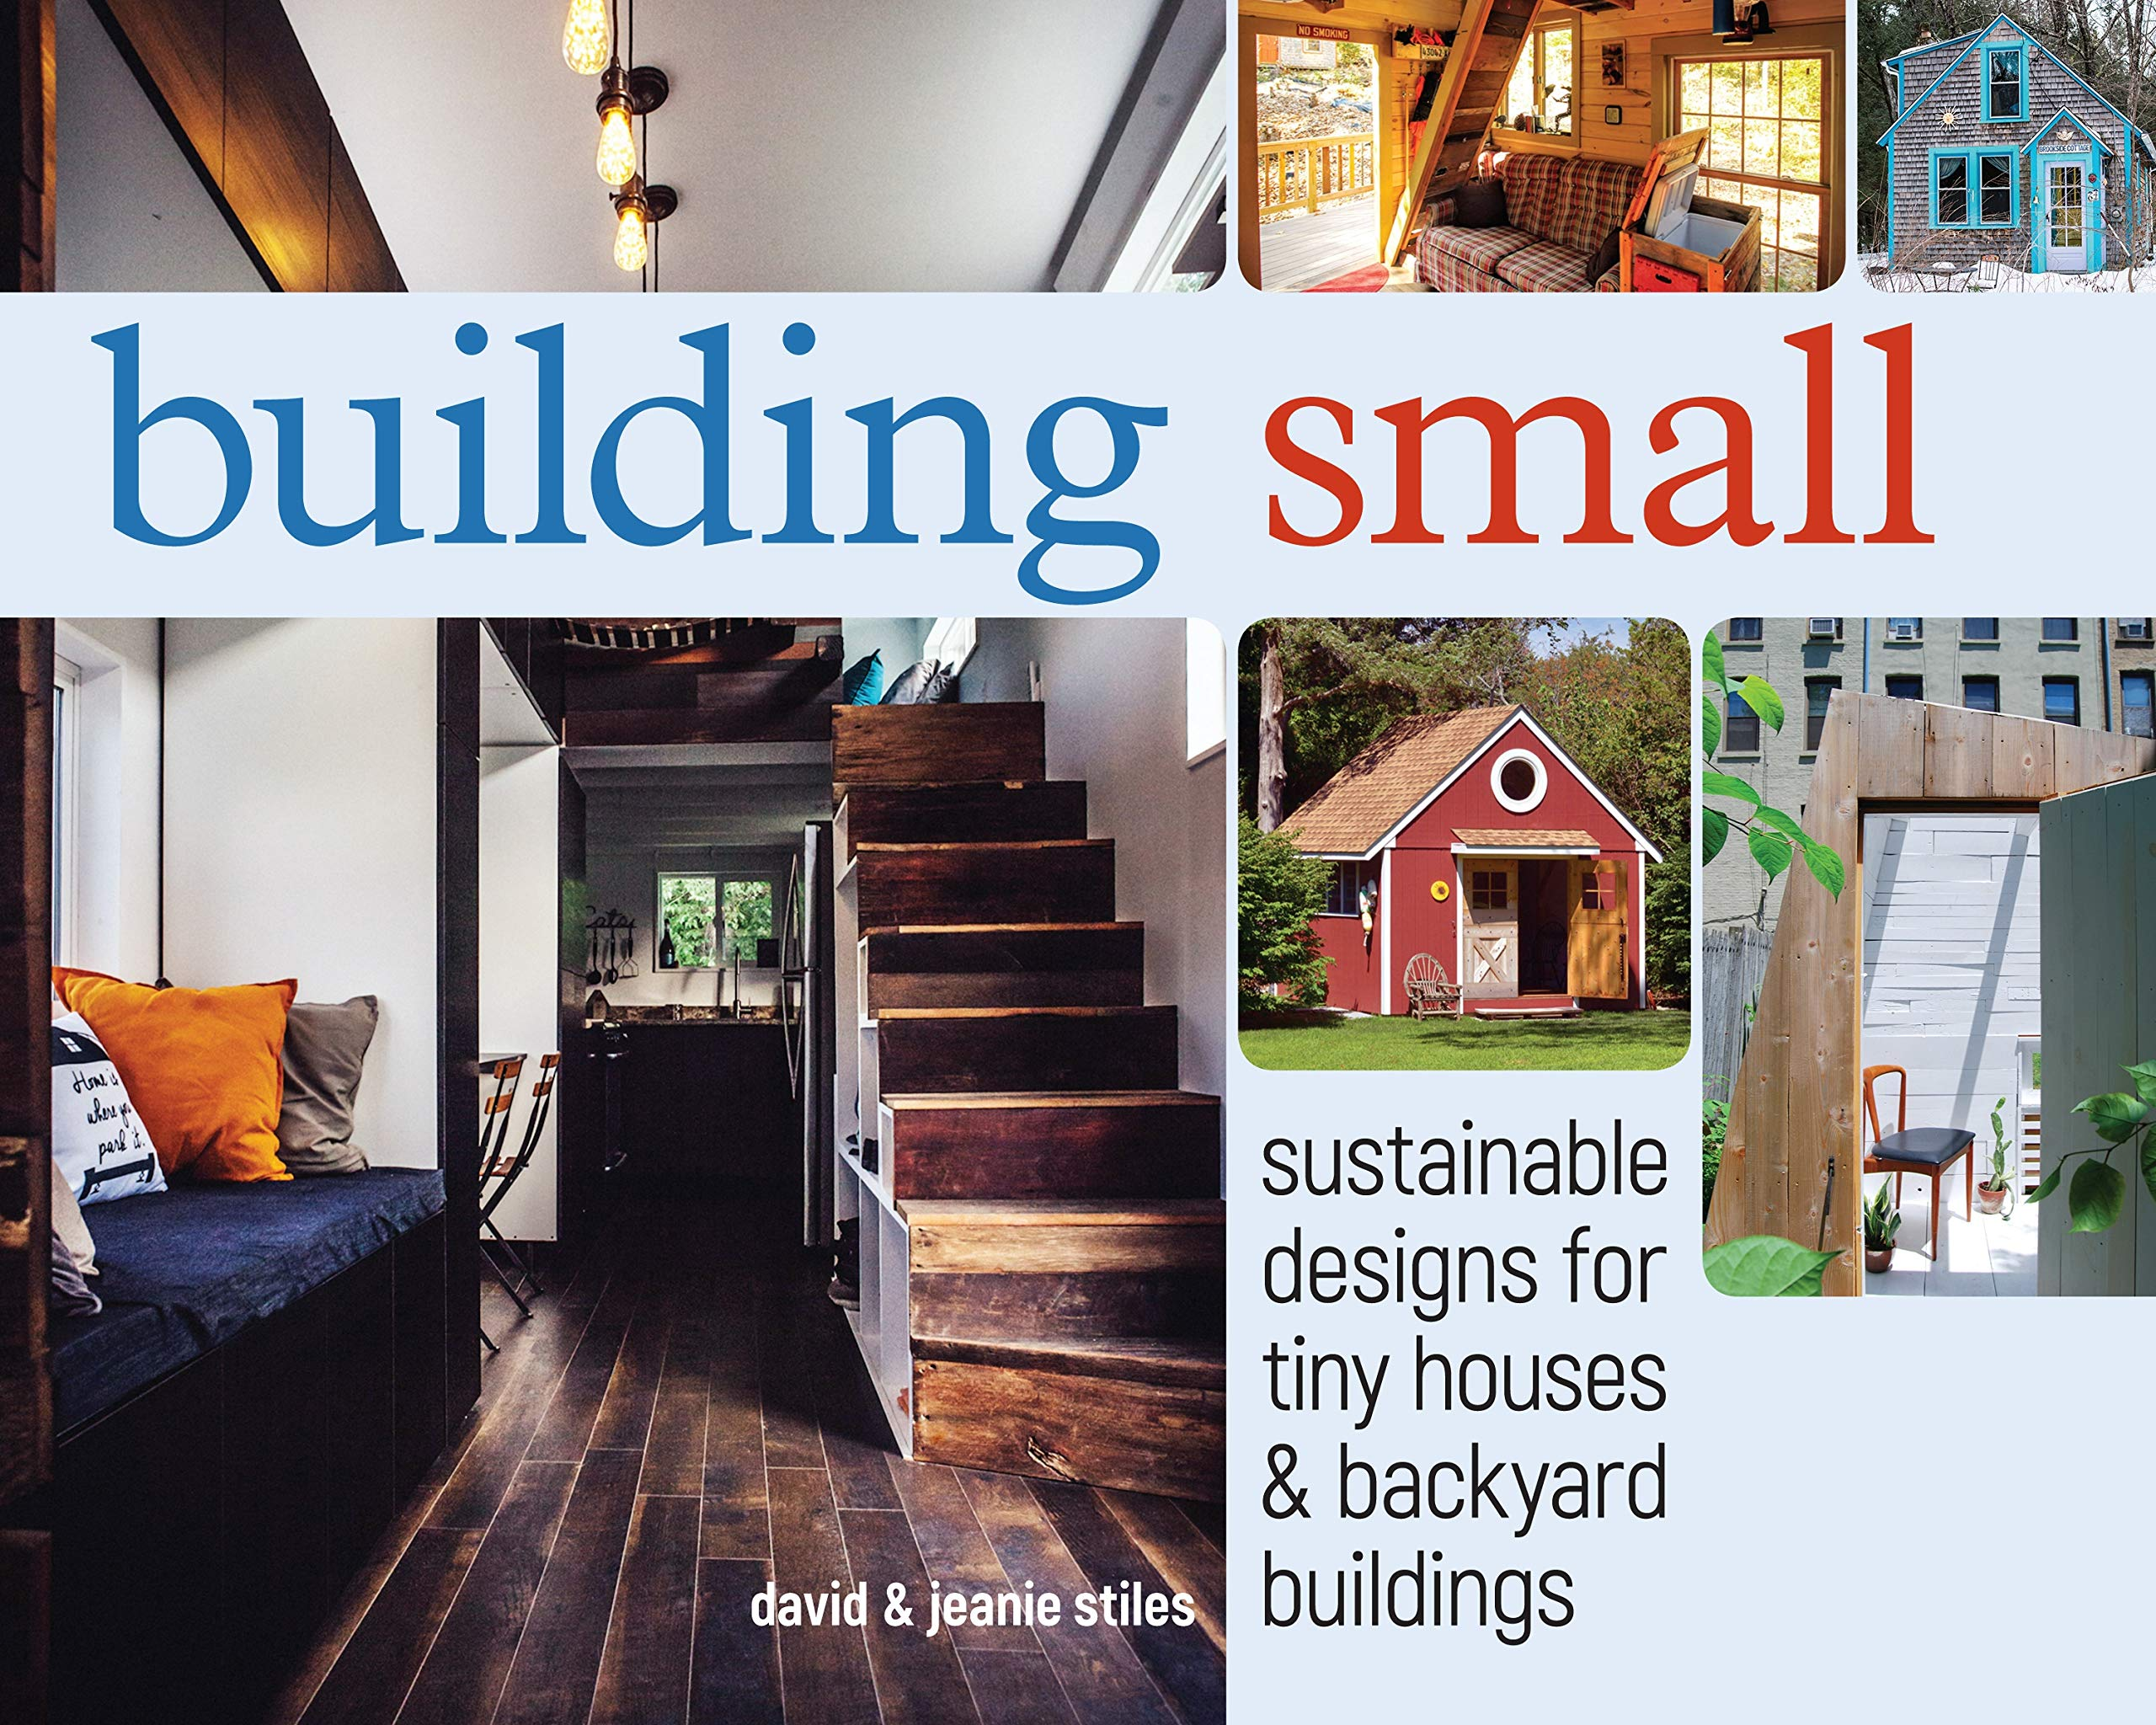 Building Small Sustainable Designs For Tiny Houses Backyard